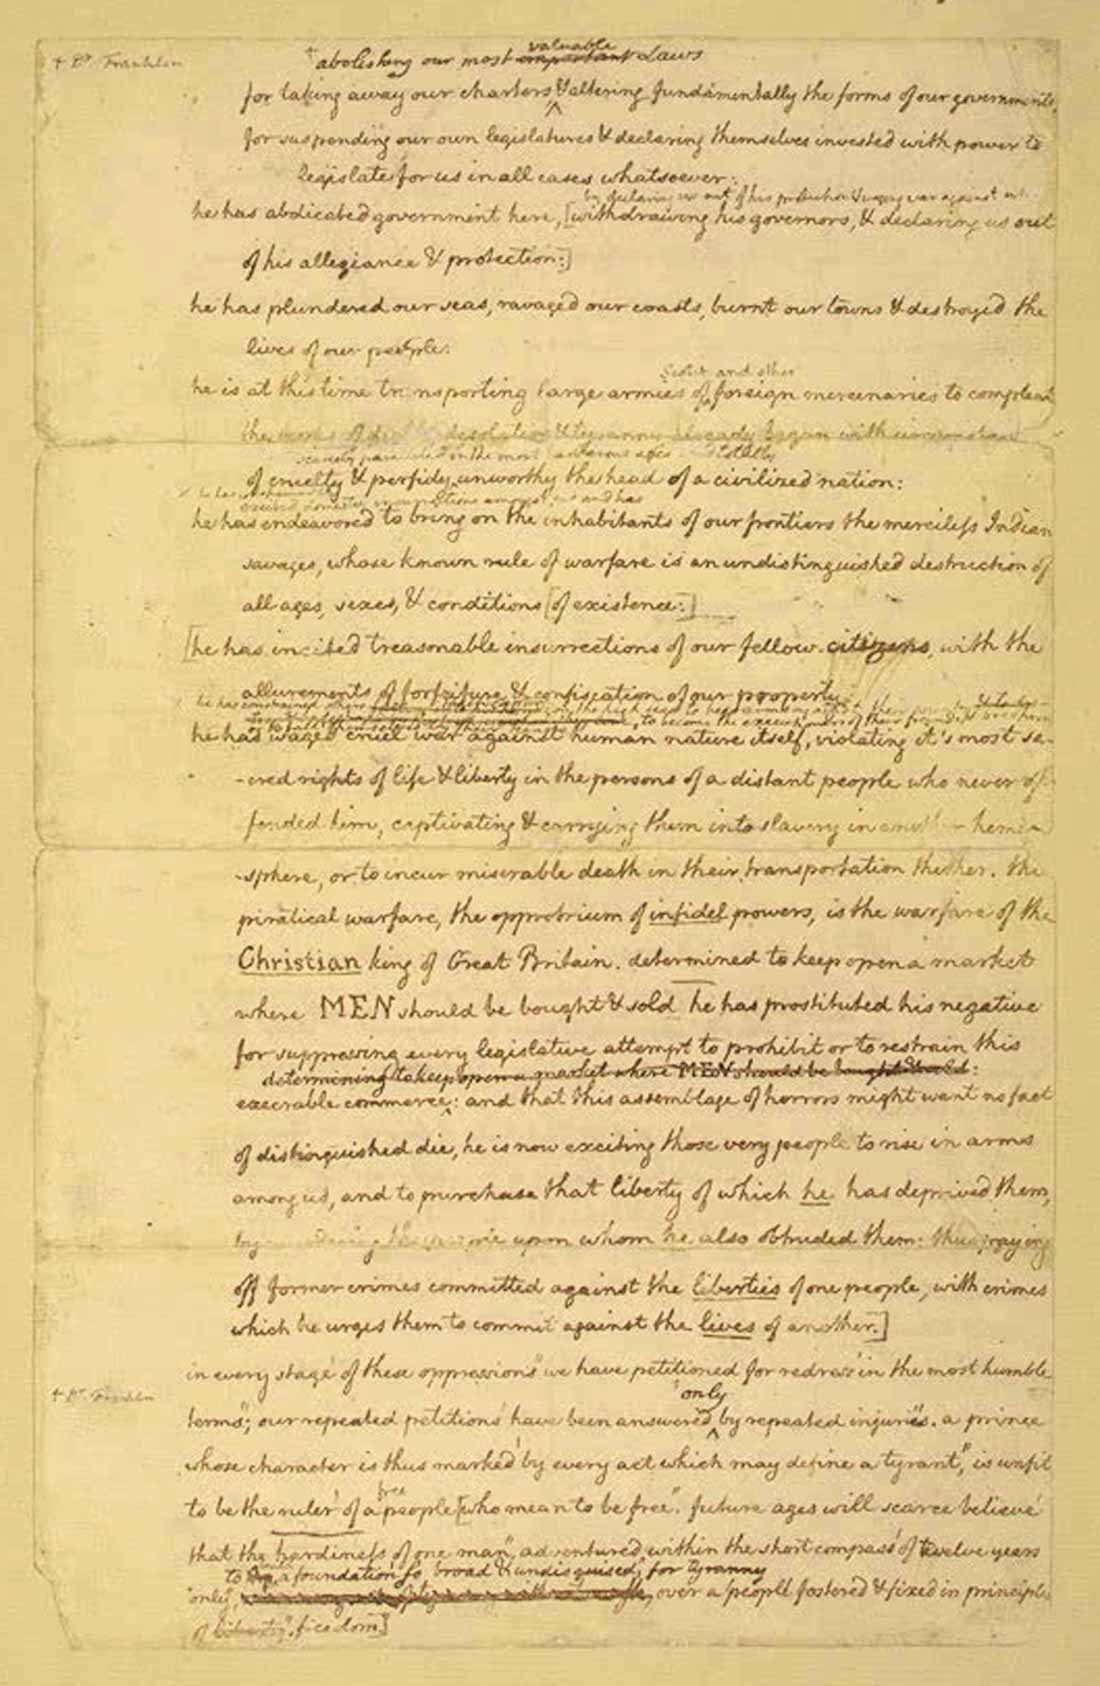 founding documents essay Online library of liberty this essay first appeared in the journal literature of of the many generalizations customarily made about the founding fathers.